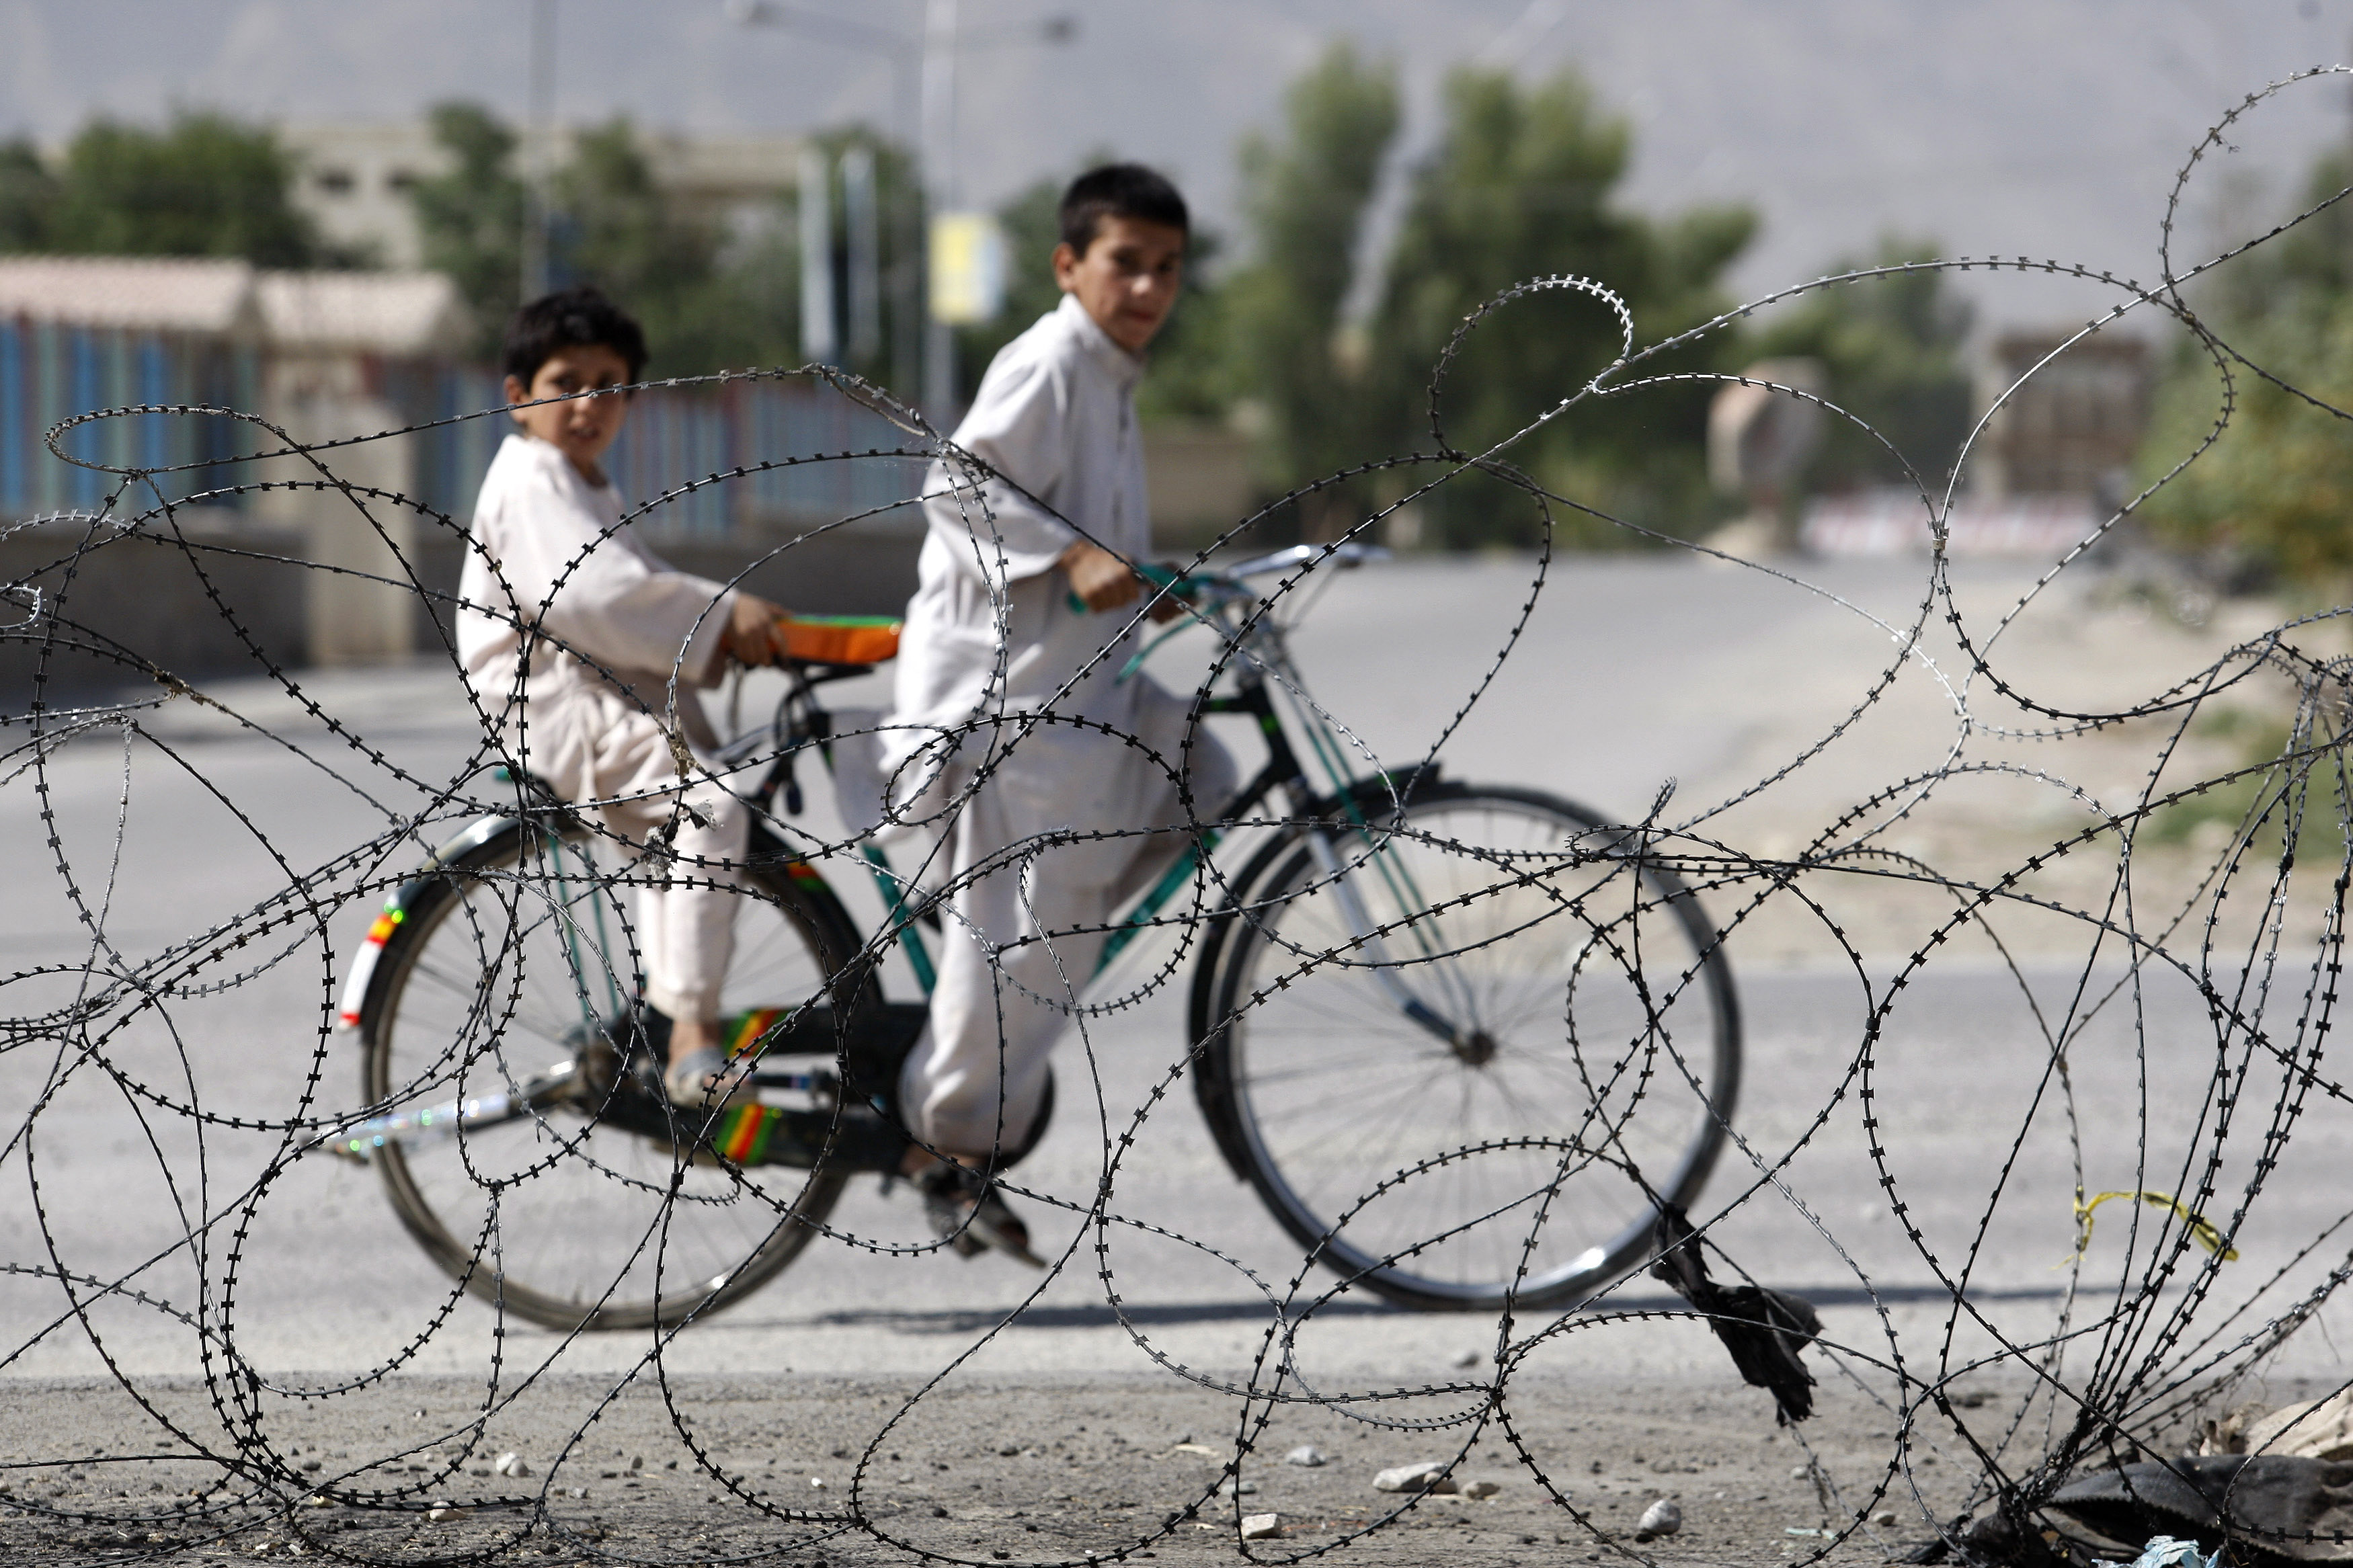 Afghan children ride a bicycle in front of a police station in the center of Kandahar city